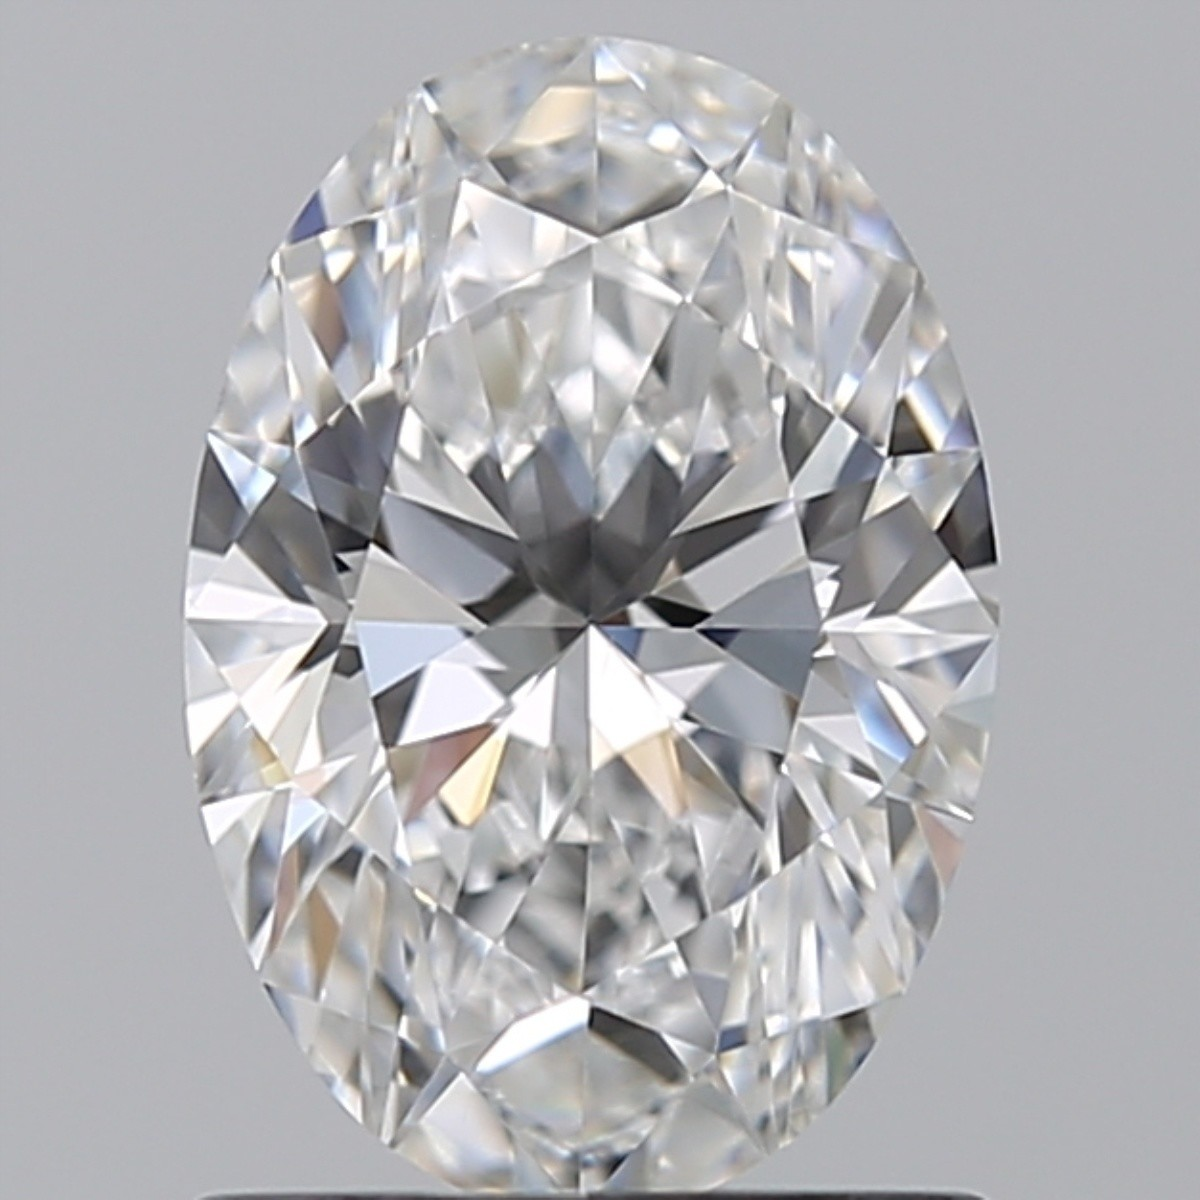 1.02 Carat Oval Diamond (E/VS1)